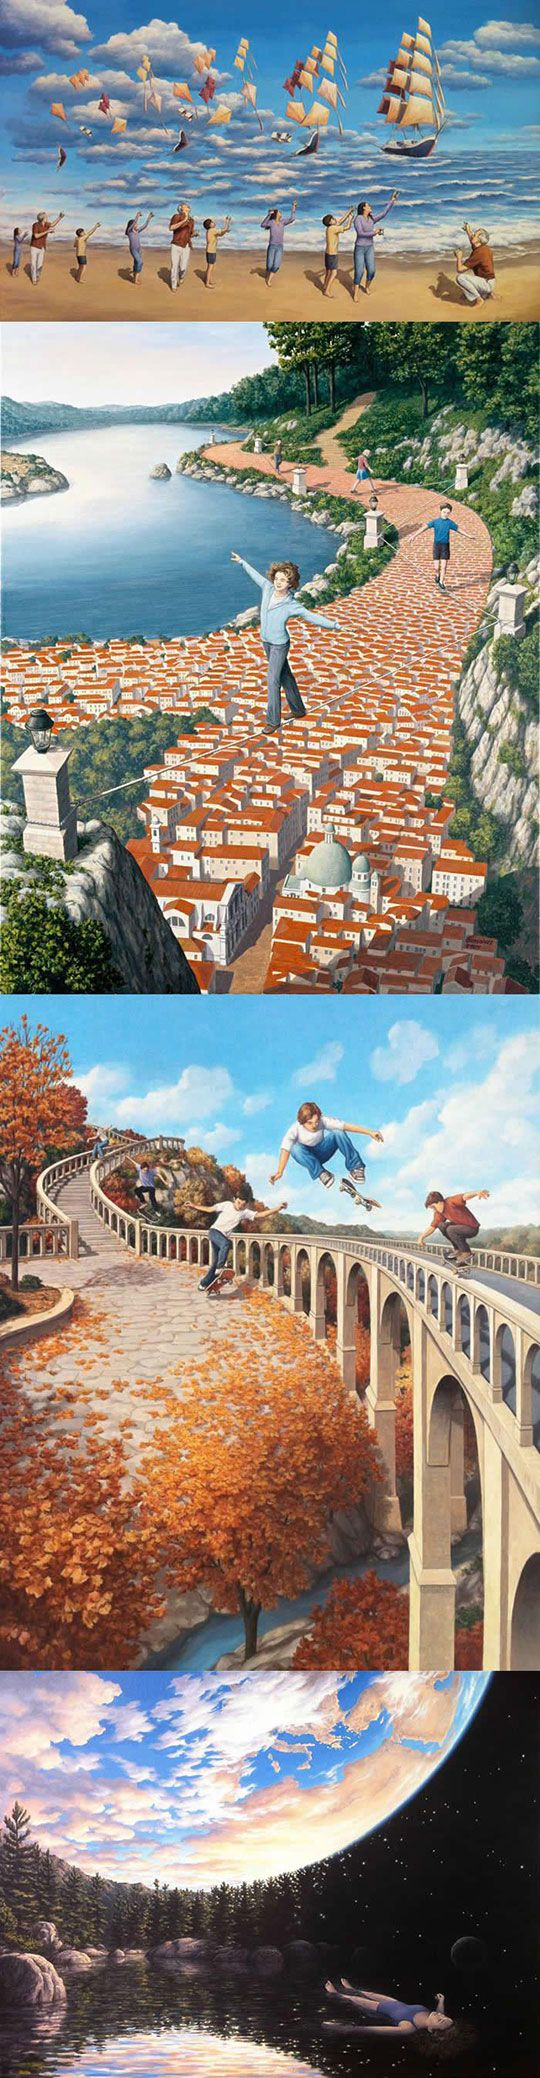 Index of library images illusions best - Mind Bending Optical Illusion Paintings By Rob Gonsalves